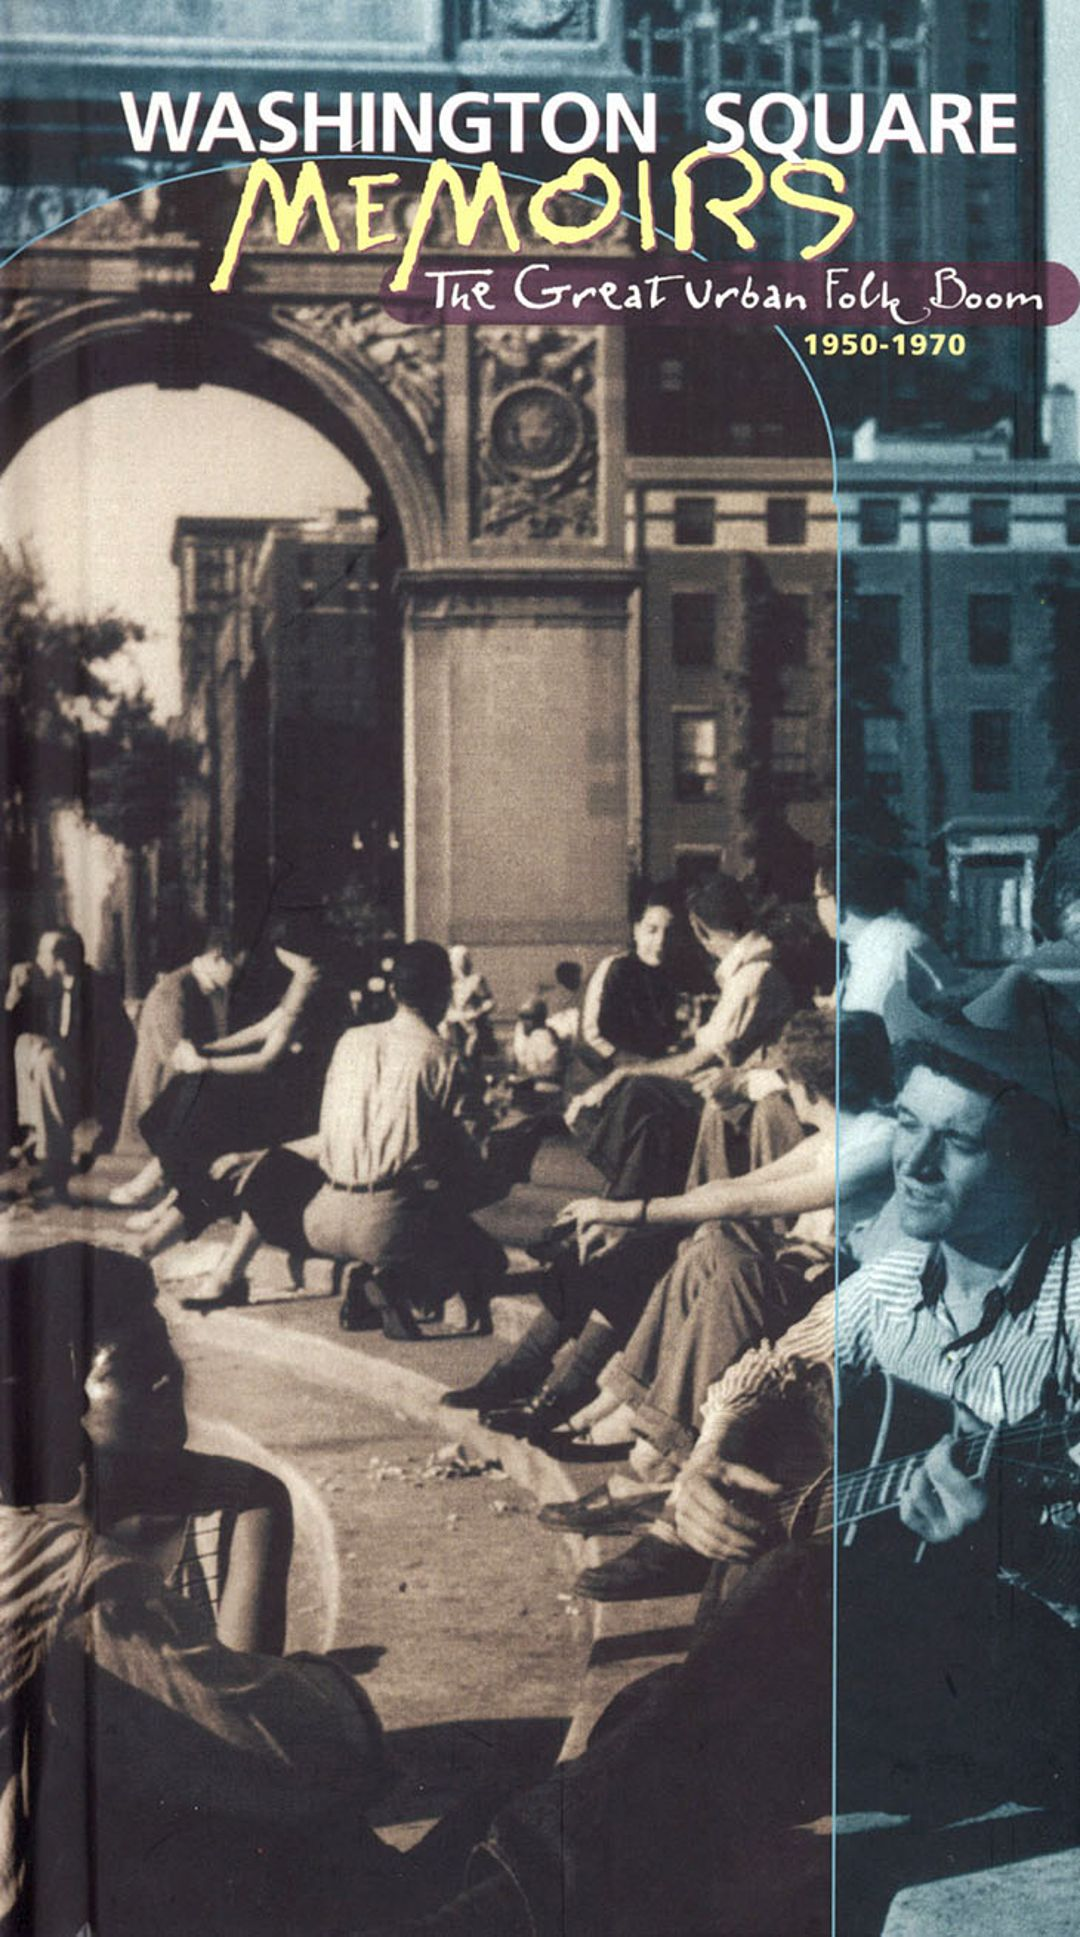 Washington Square Memoirs: The Great Urban Folk Boom, 1950-1970